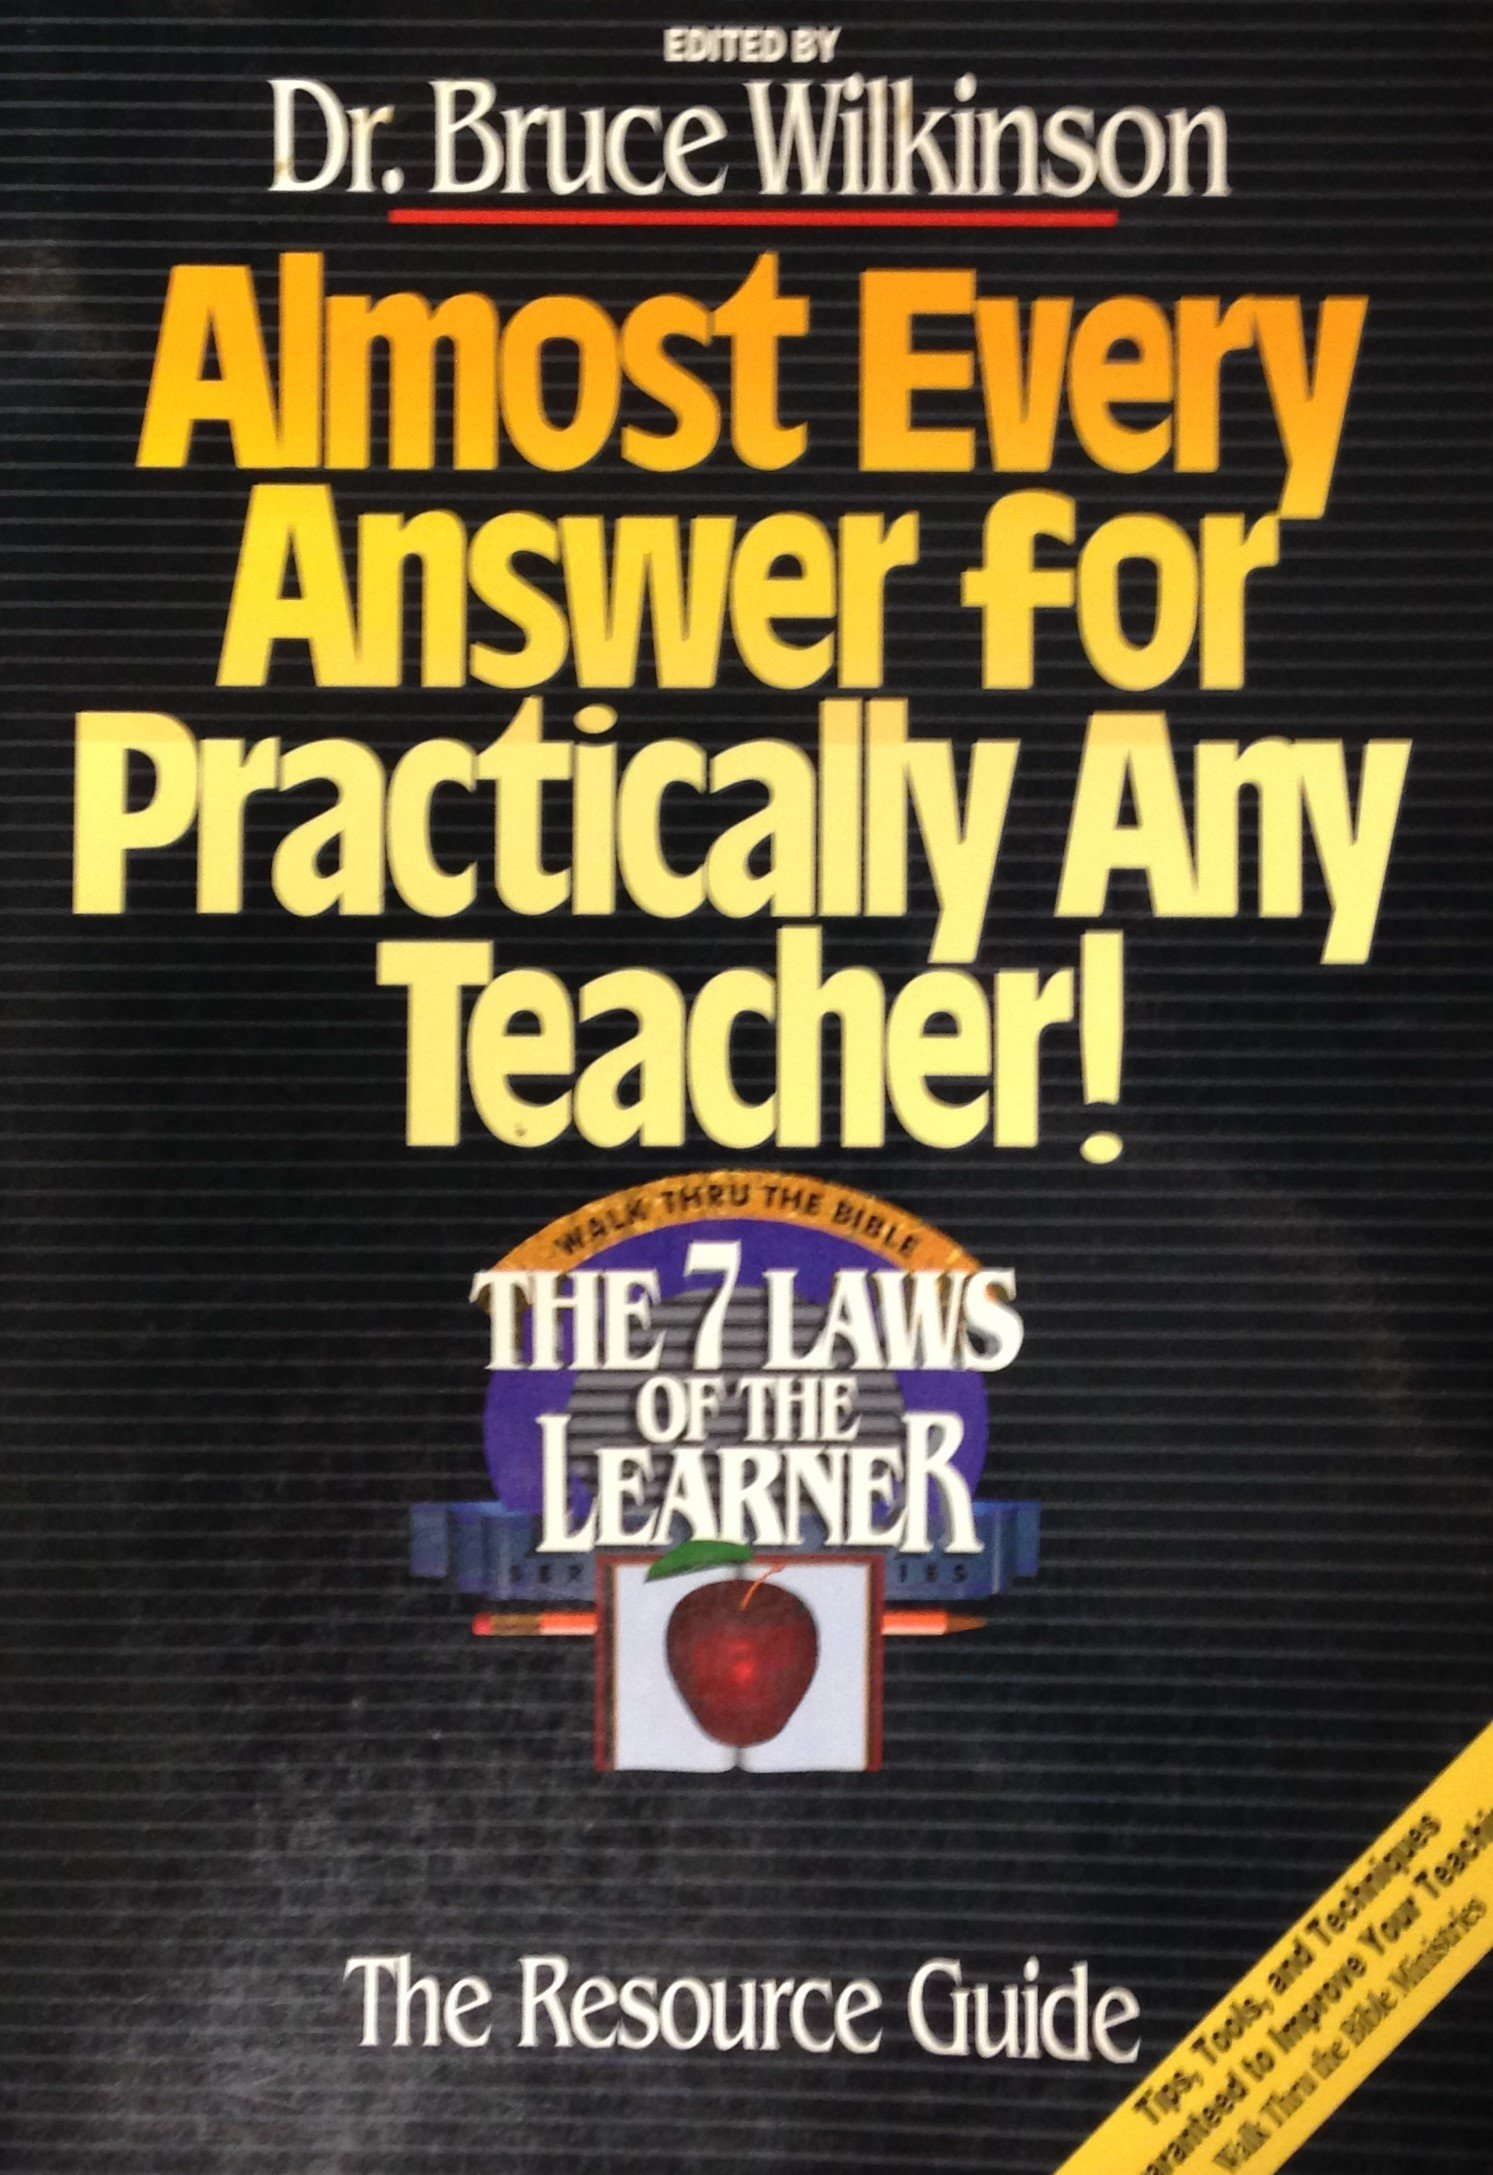 Almost Every Answer for Practically Any Teacher! by Dr. Bruce Wilkinson 00072